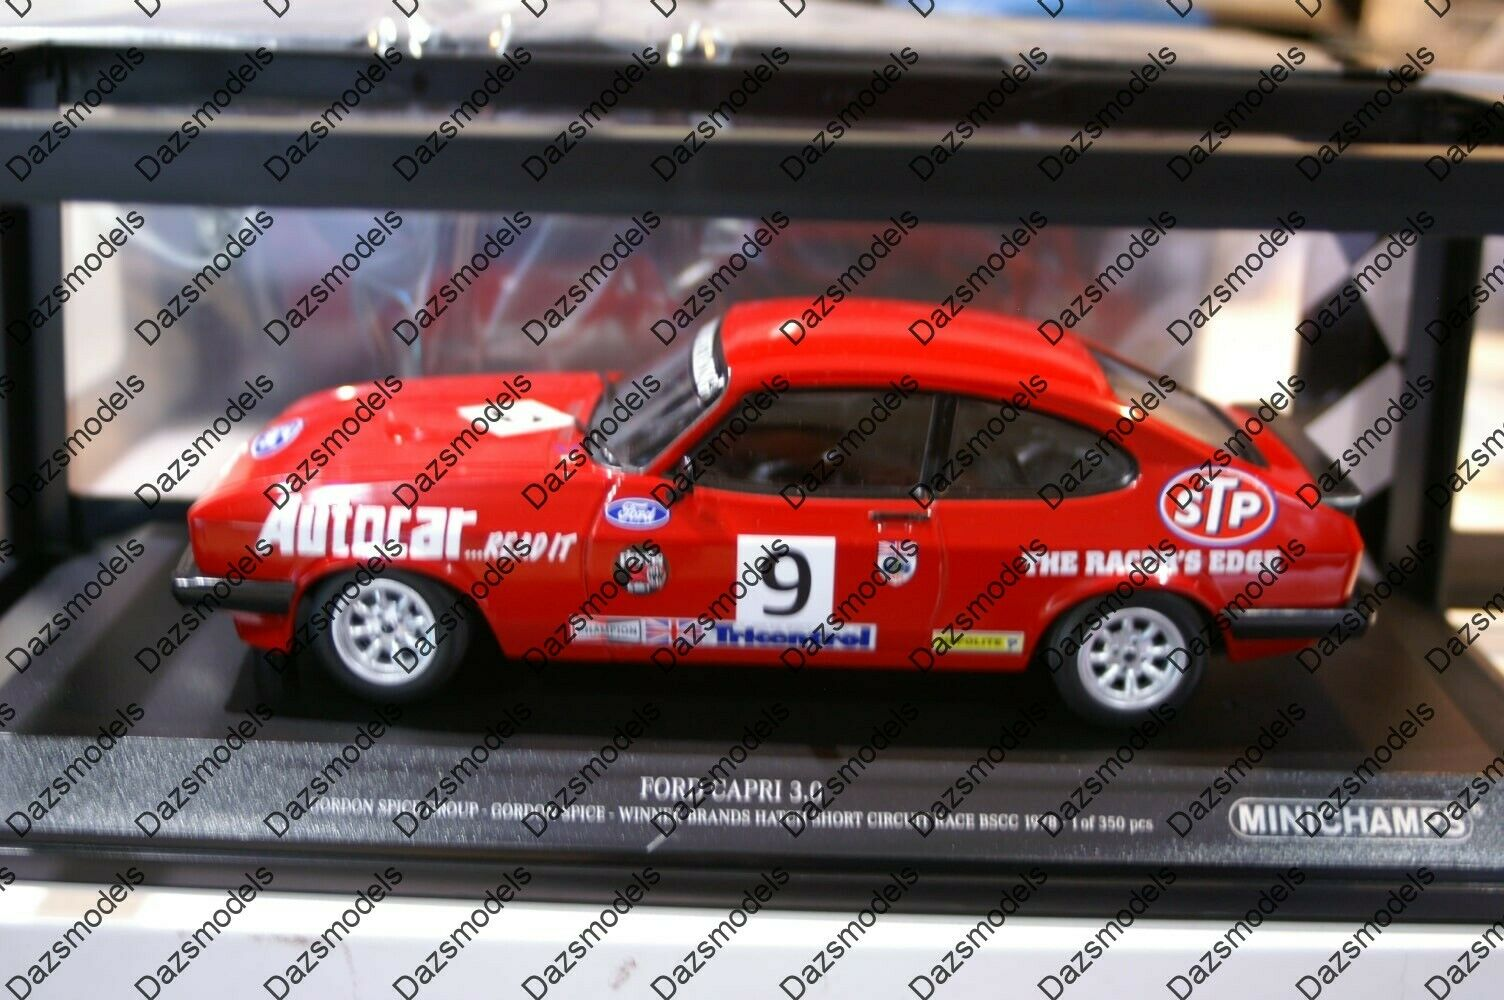 MINICHAMPS FORD CAPRI Brands Hatch 1978 G. Spice en 1 18 788609